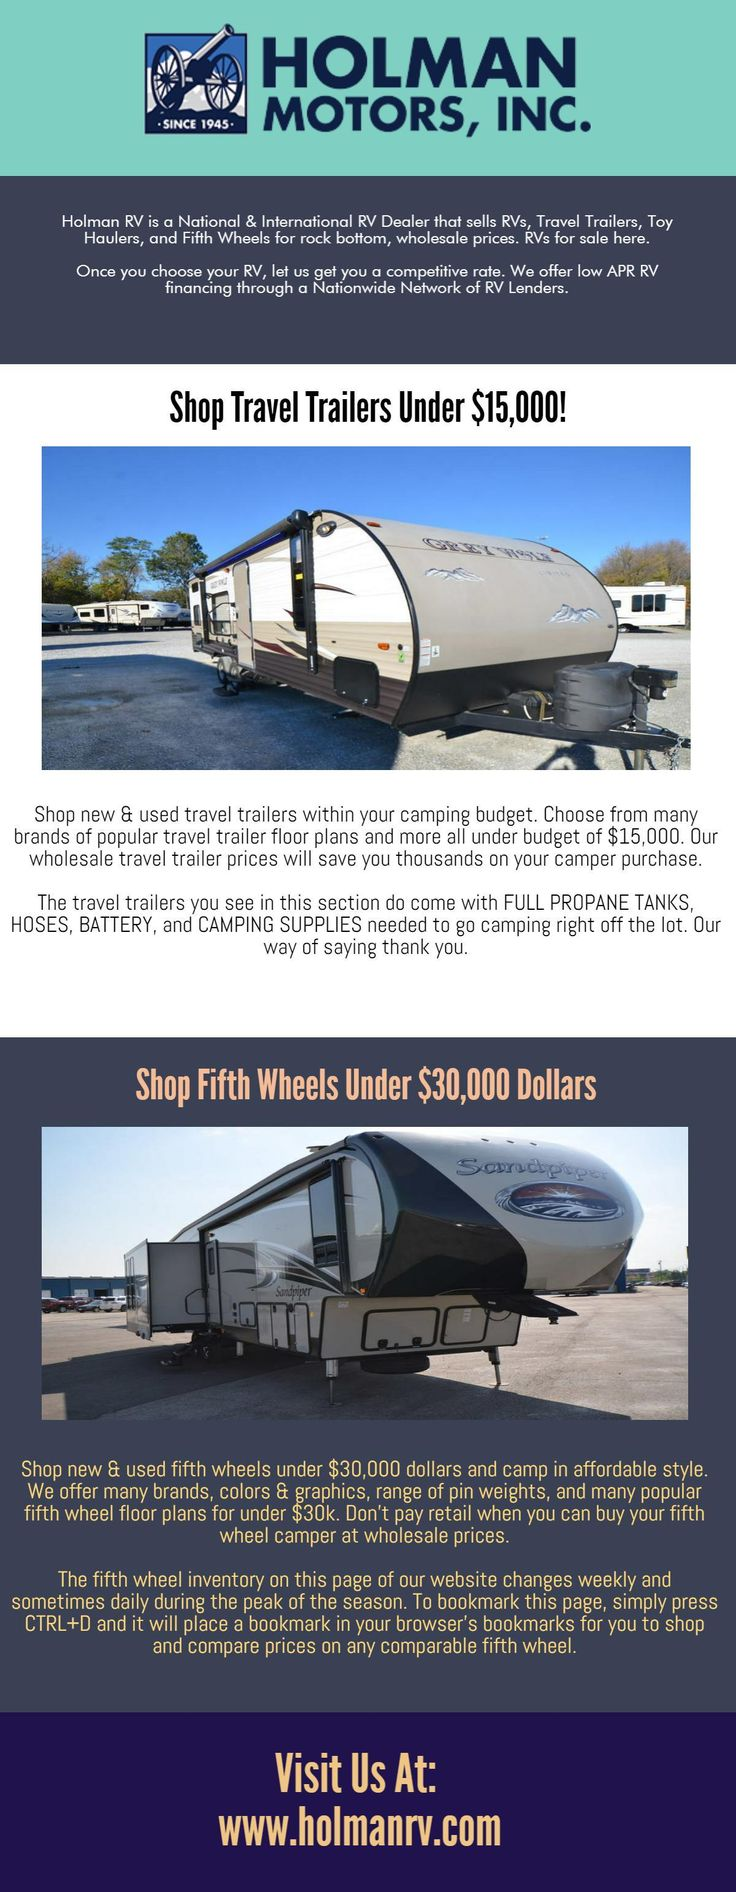 Holman RV is a National & International RV Dealer that sells RVs, Travel Trailers, Toy Haulers, and Fifth Wheels for rock bottom, Lance Campers, wholesale prices. RVs for sale here. HolmanRV is also a REDEX dealer, which is a nationwide network of some of the best RV Dealerships in the country. What this means to you is that you will have a nationwide networks of dealers behind you when you travel in your RV.We believe in giving you the best pricing up front.